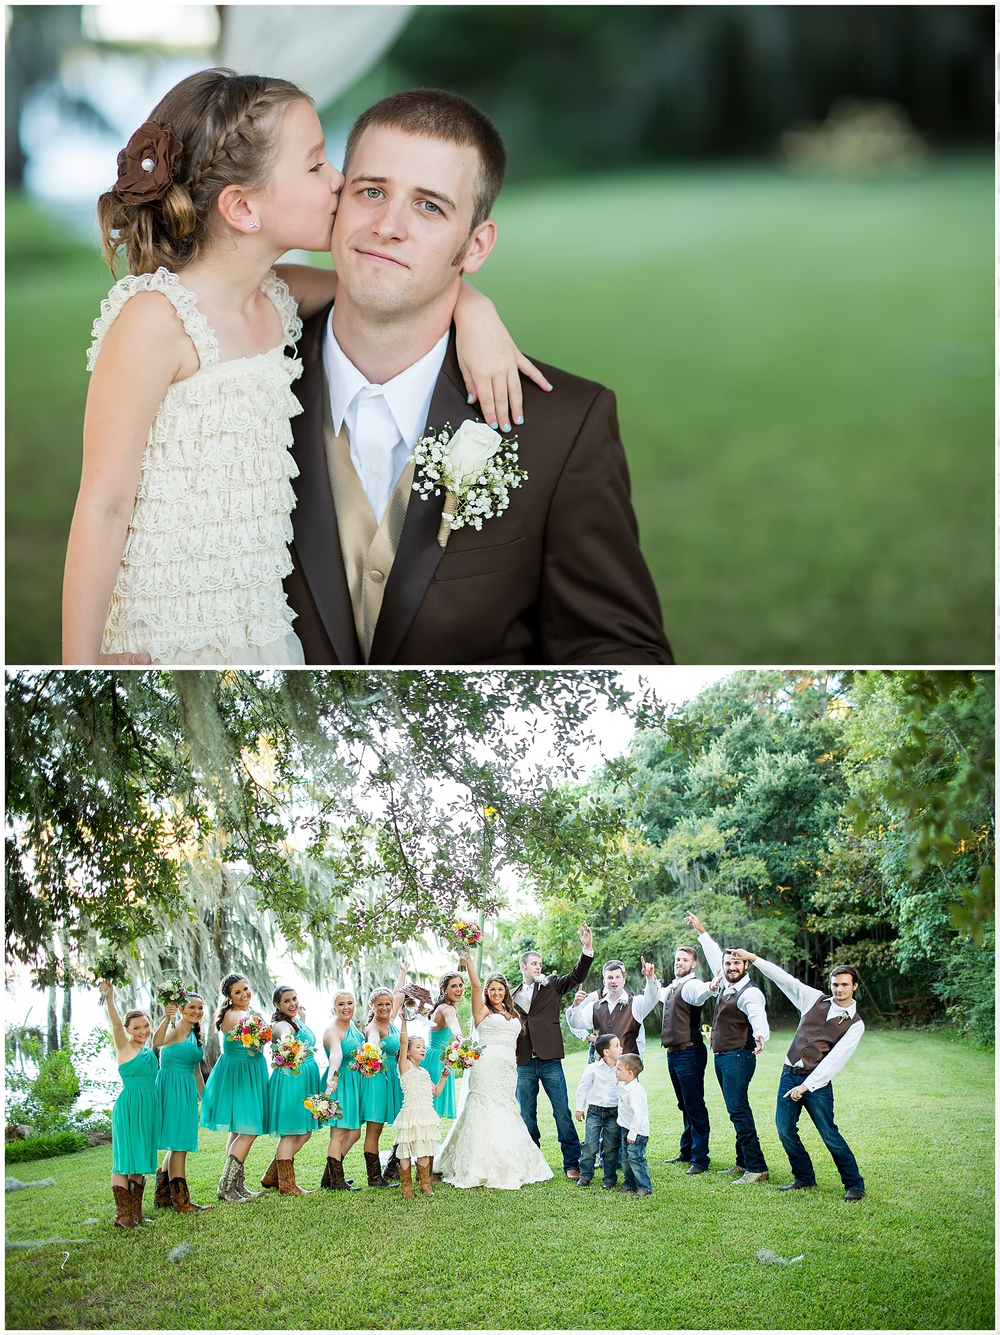 McCoy_ElKarubah_Shreveport_Wedding_12.jpg